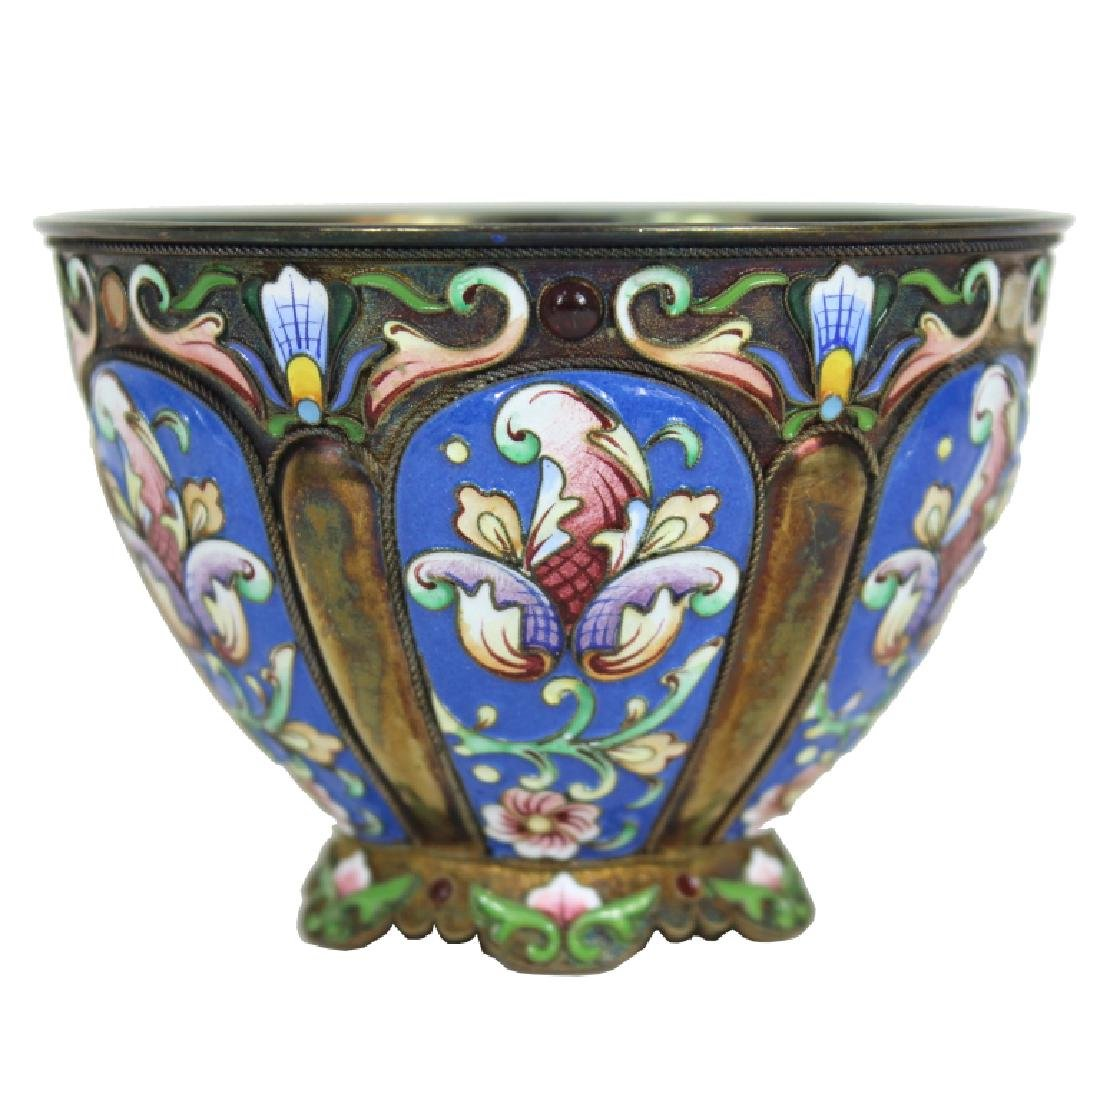 RUSSIAN SILVER GILT AND CLOISONNE ENAMEL BOWL